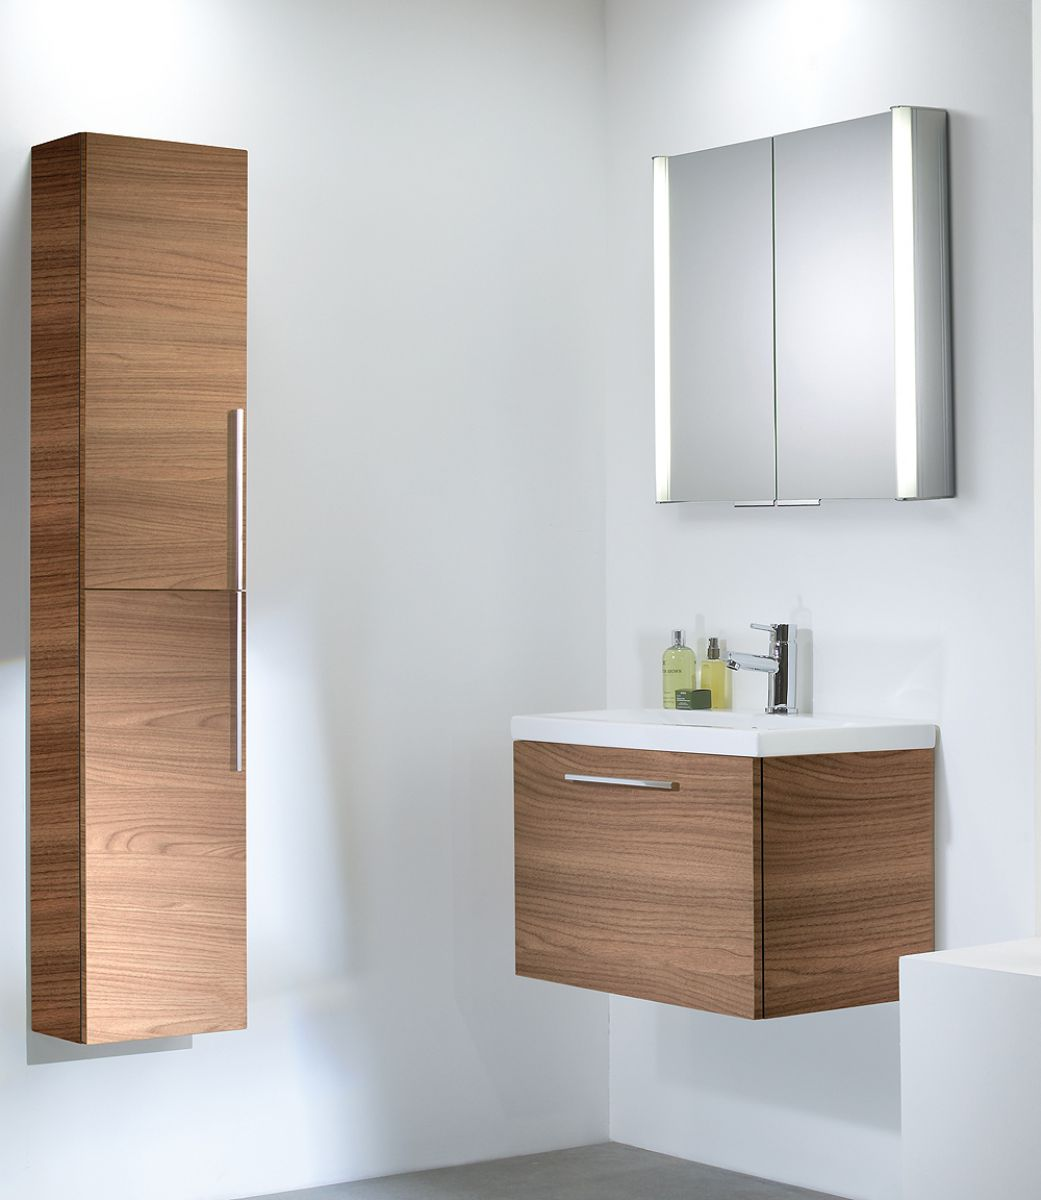 Storage Units Bathroom: Bathroom Cupboards Wall Mounted & Freestanding Storage